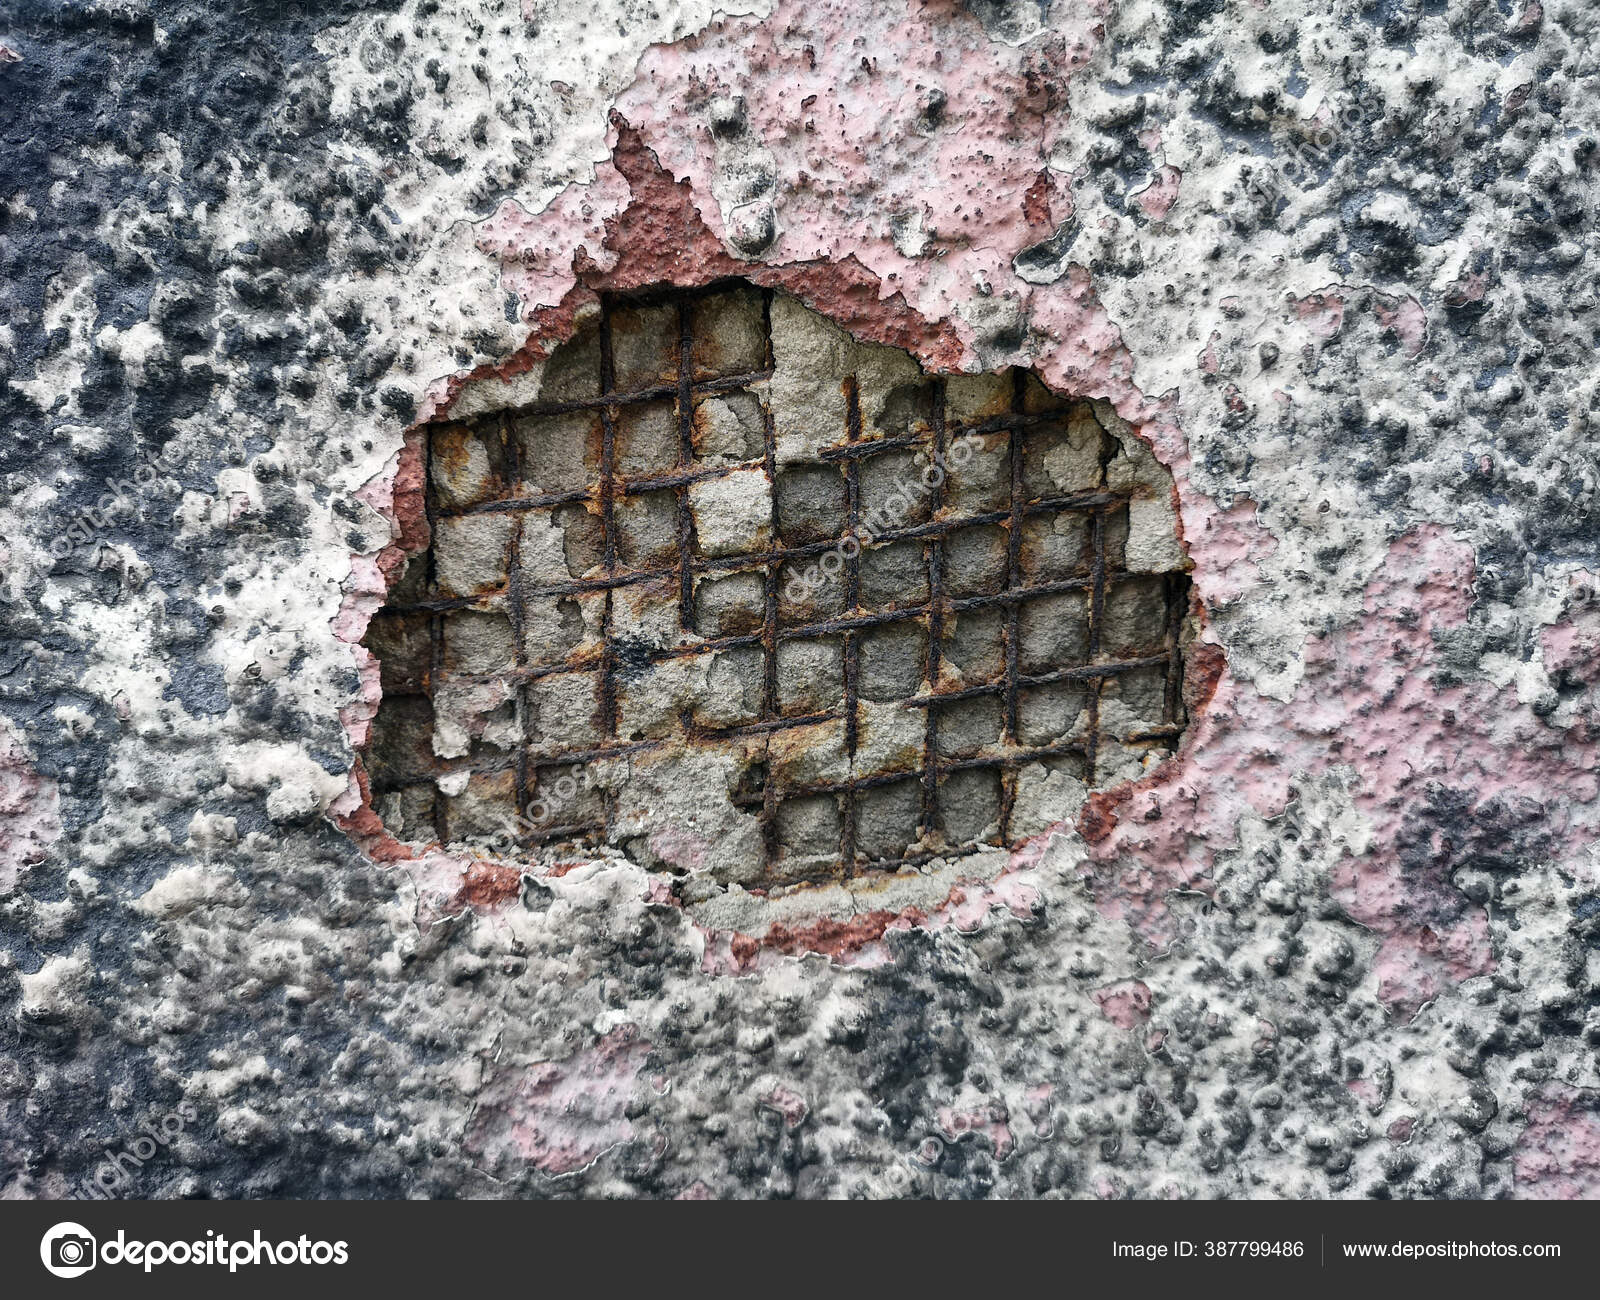 Background Texture Iron Rusted Fittings Breakaway Concrete Wall Plaster Iron Stock Photo C 977 Rex 977 387799486